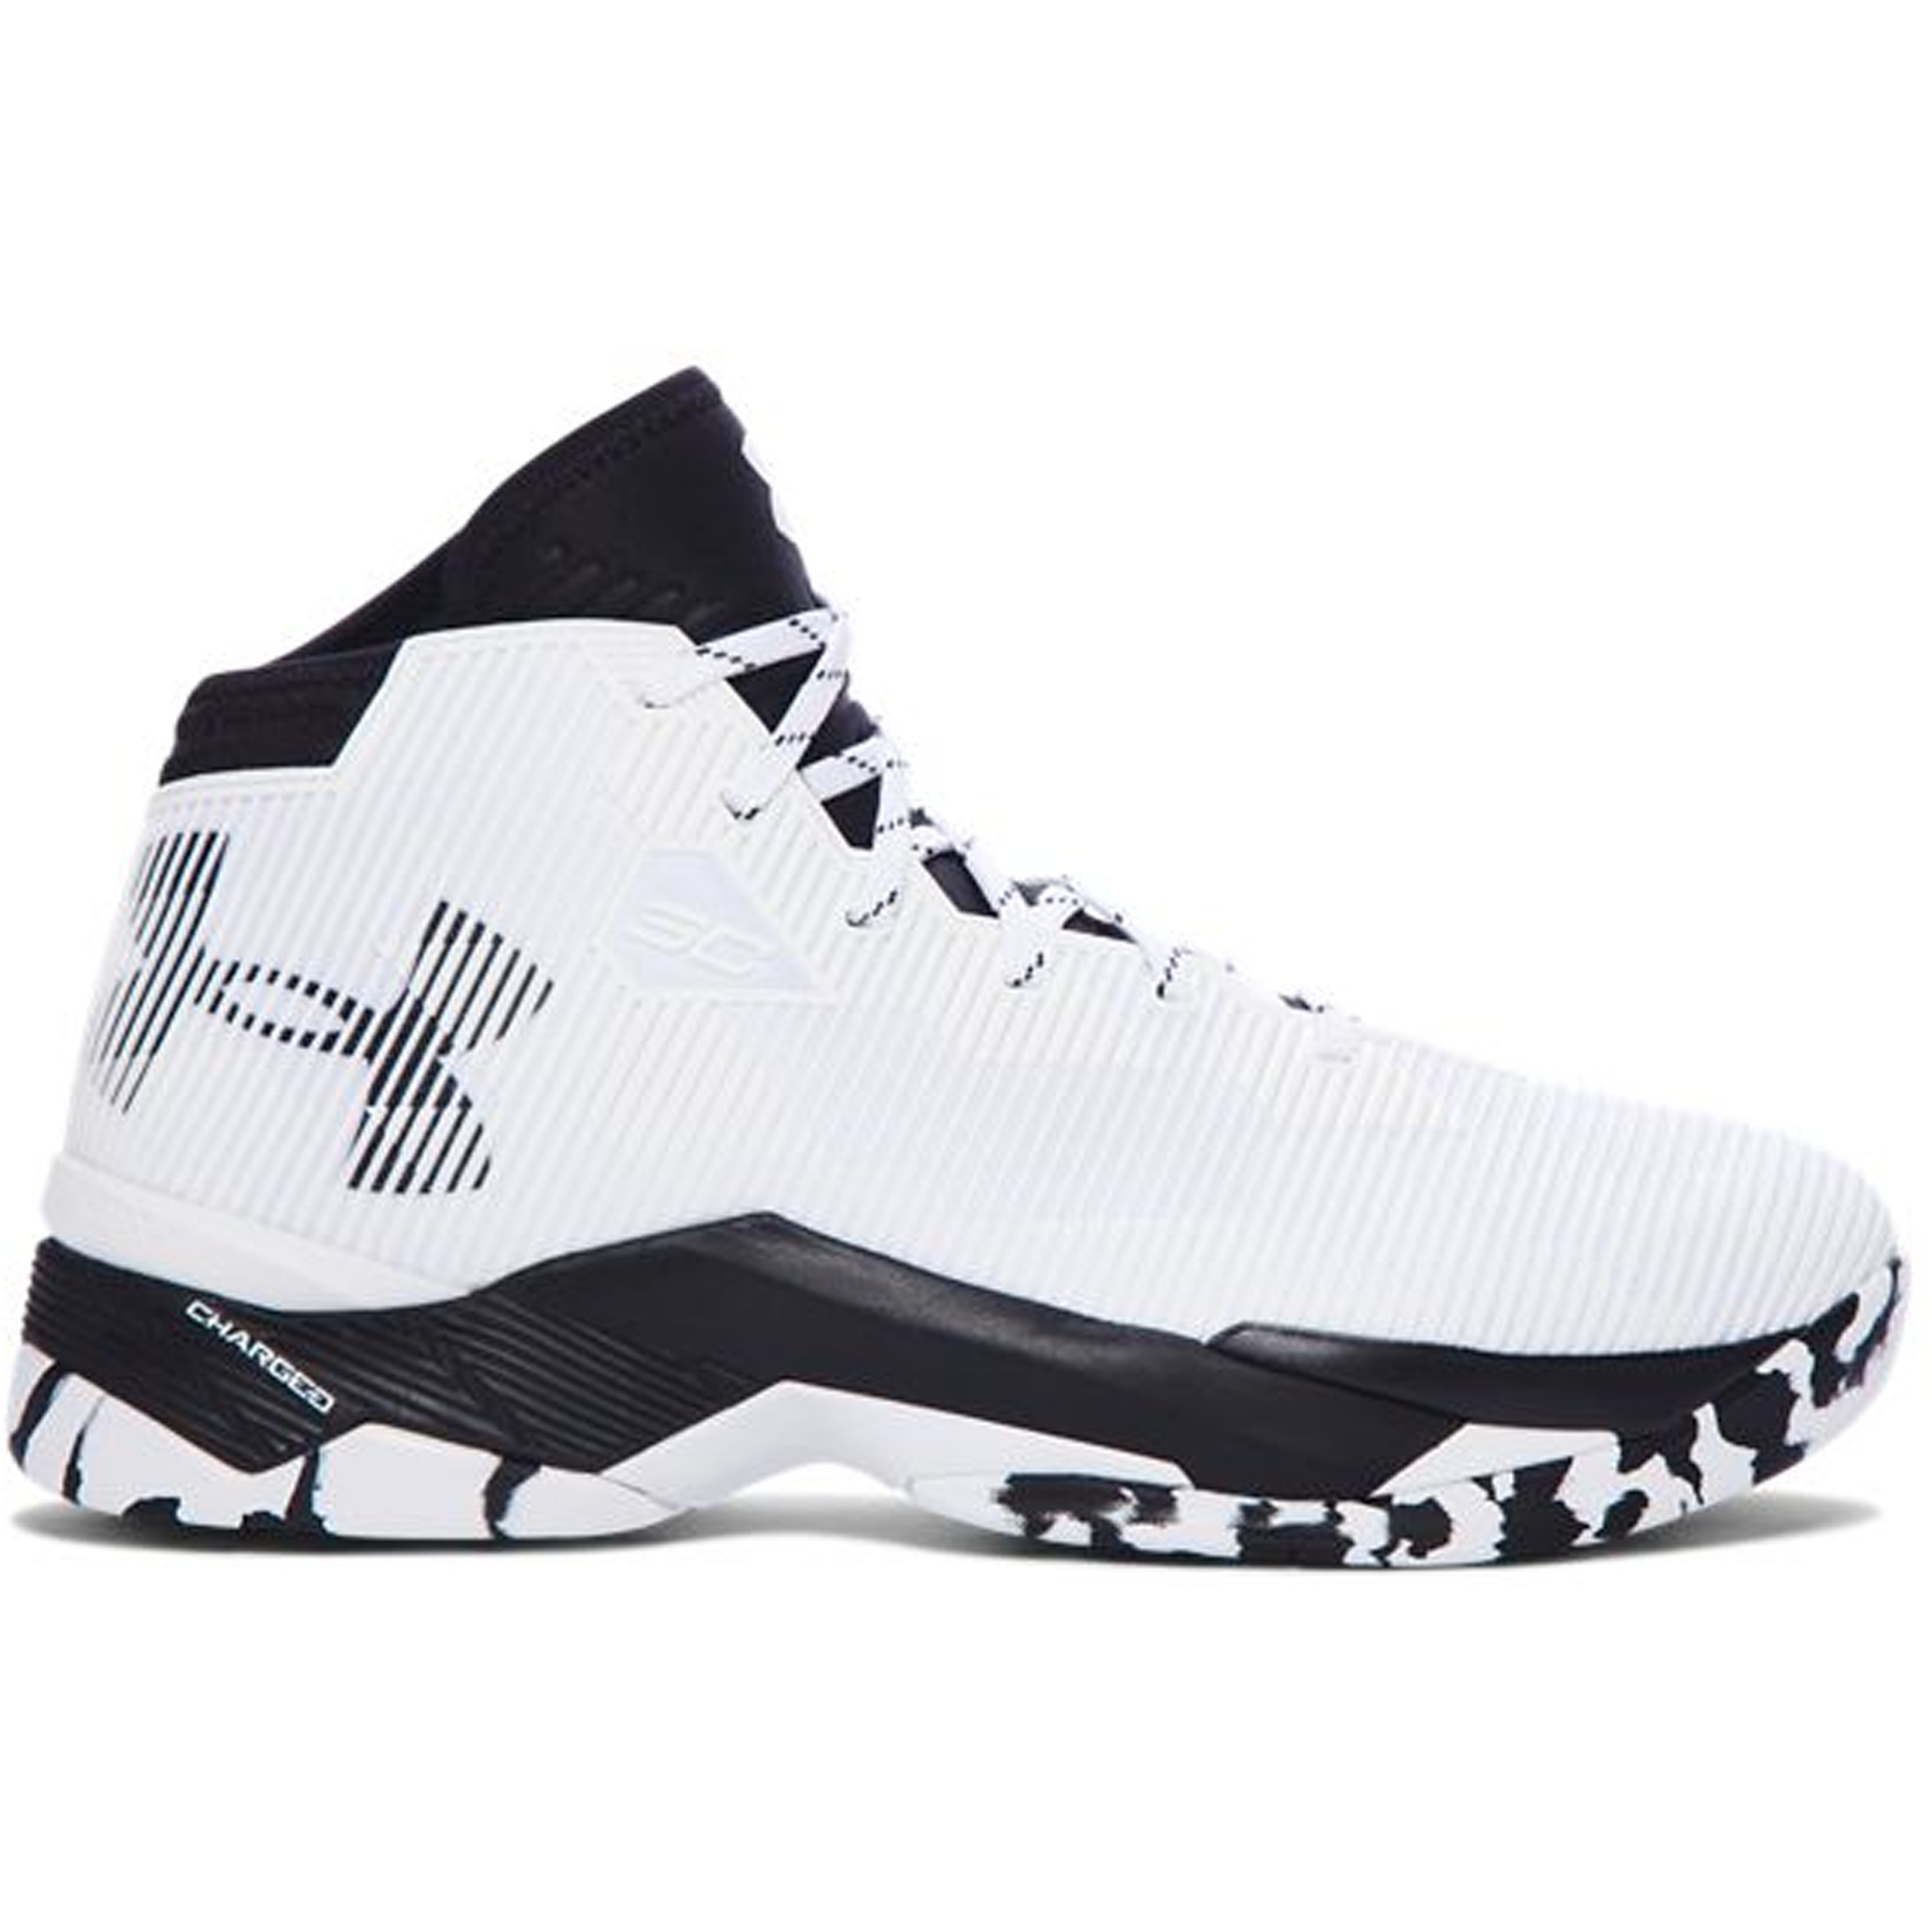 Under Armour Curry 2.5 White Black (1274425-104)